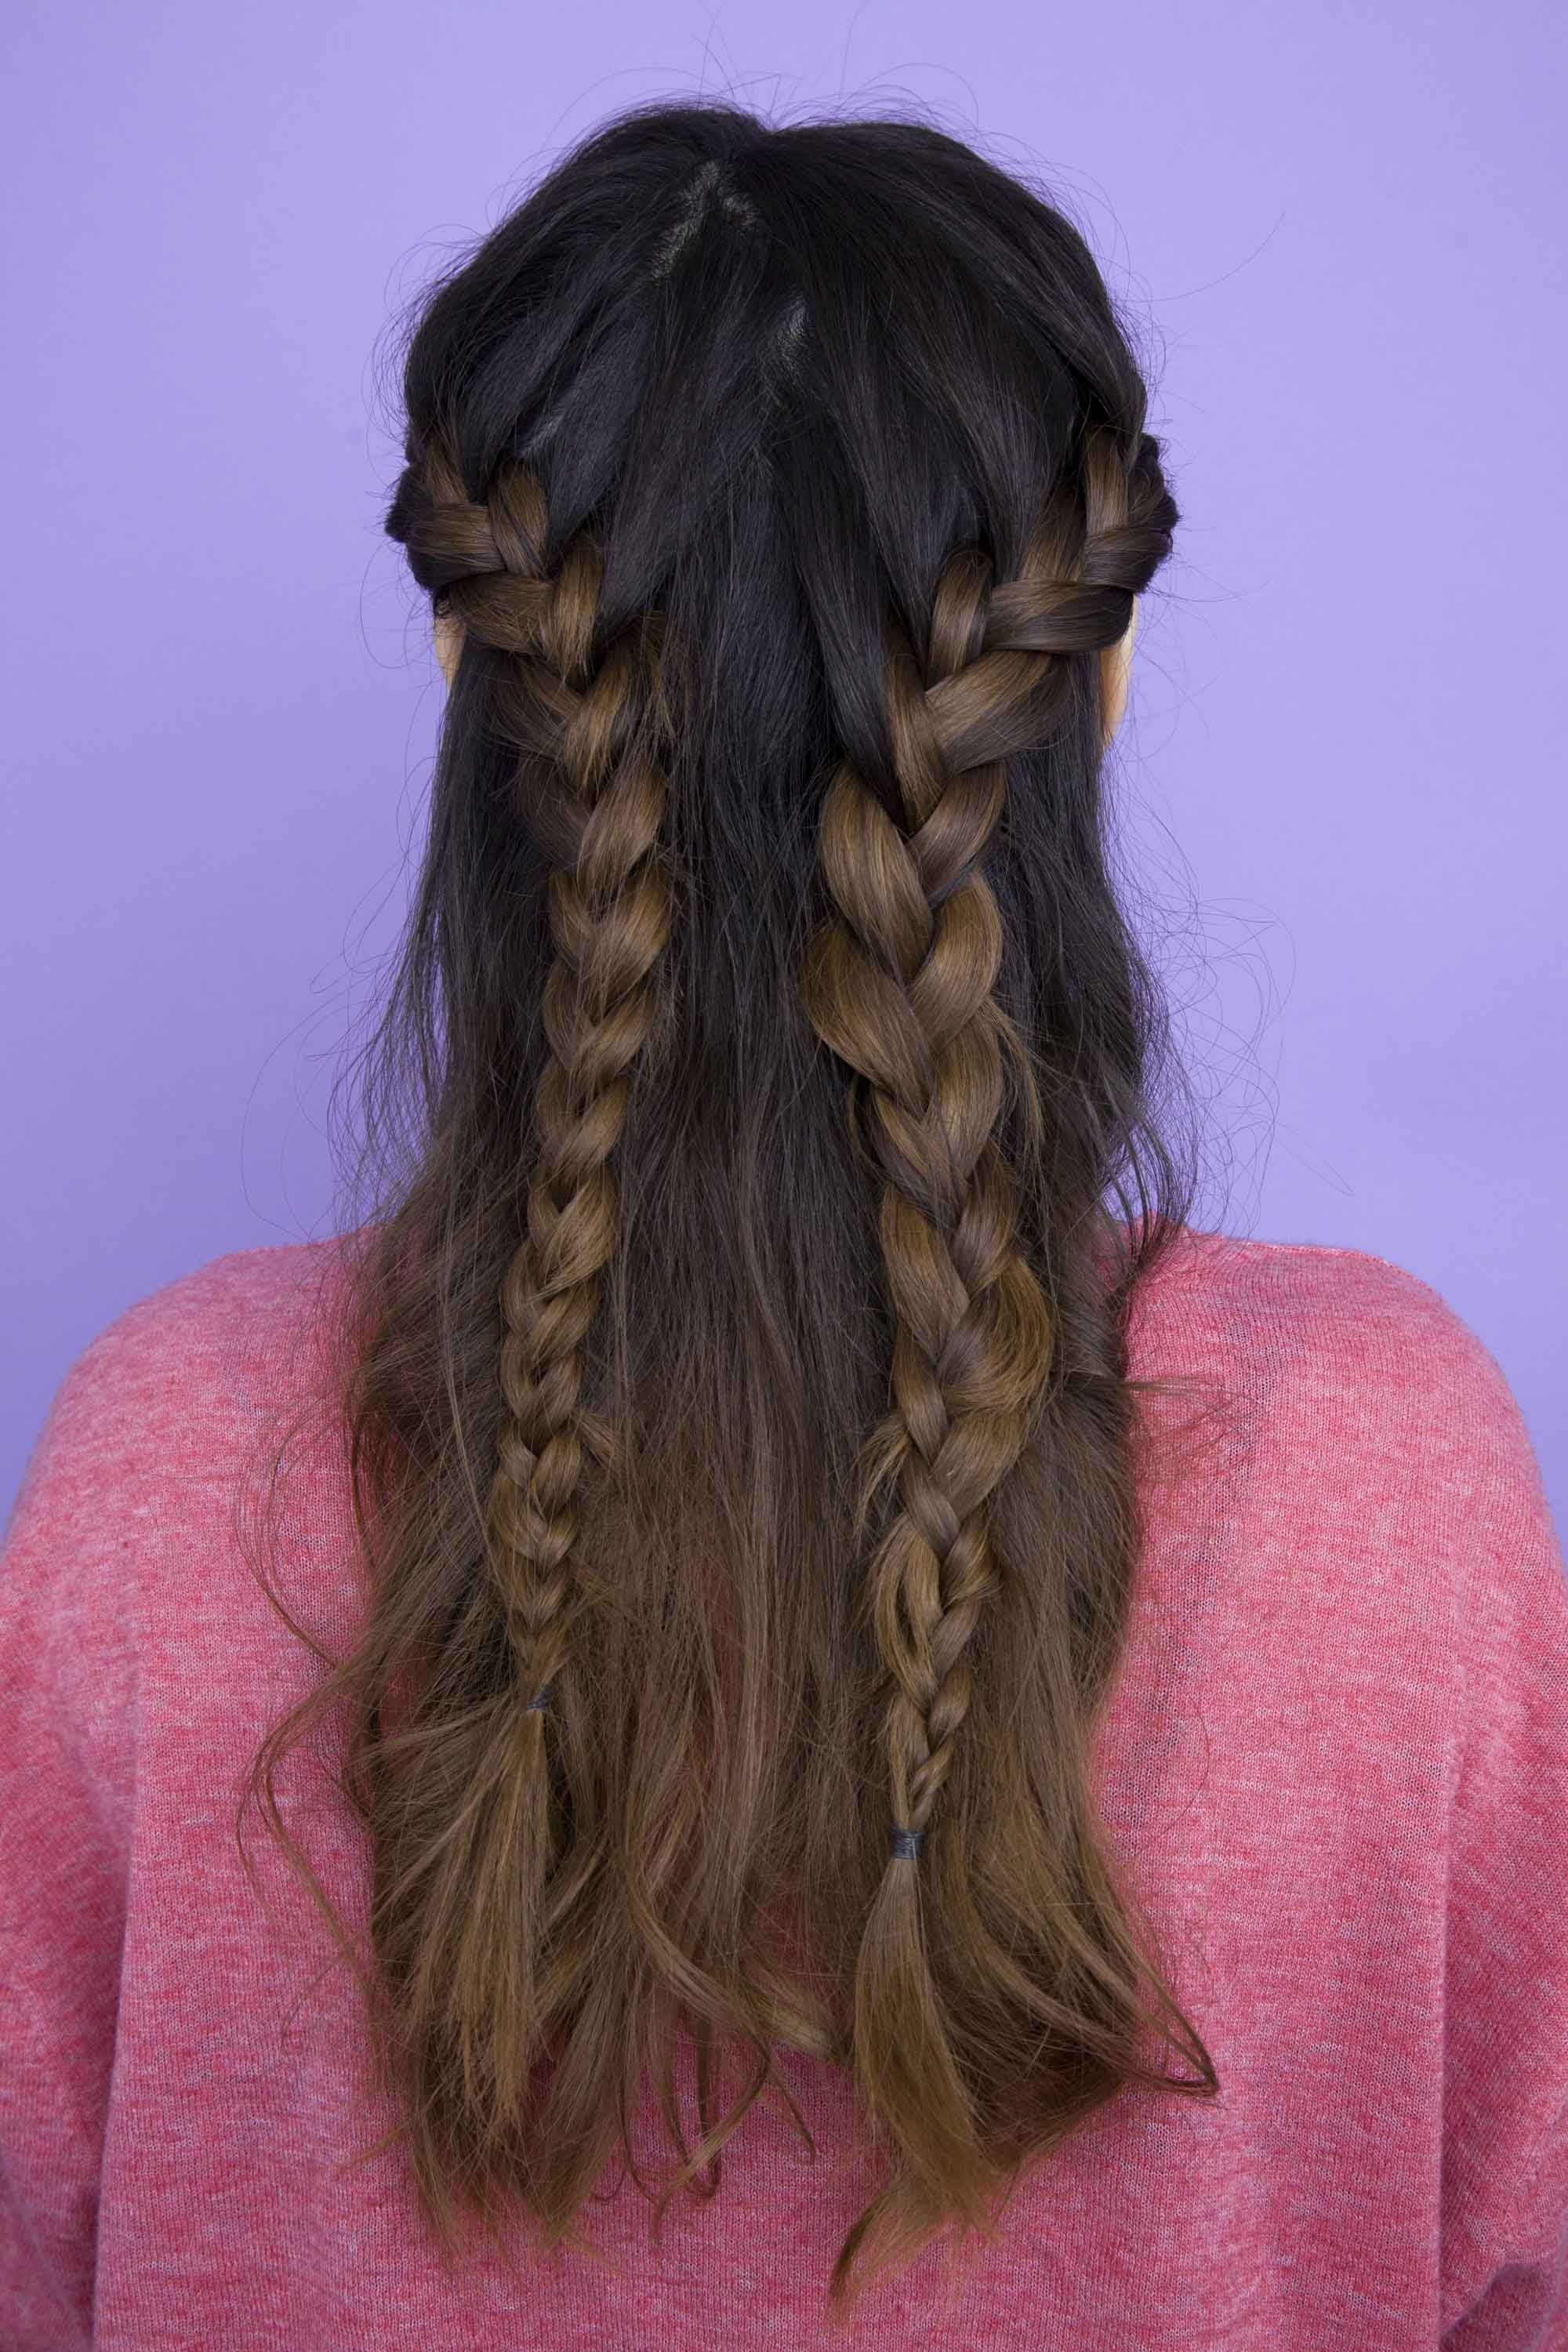 French Braid Hairstyles: 8 Casual Weekend Plaits To Try Intended For Widely Used French Braid Hairstyles (View 12 of 15)